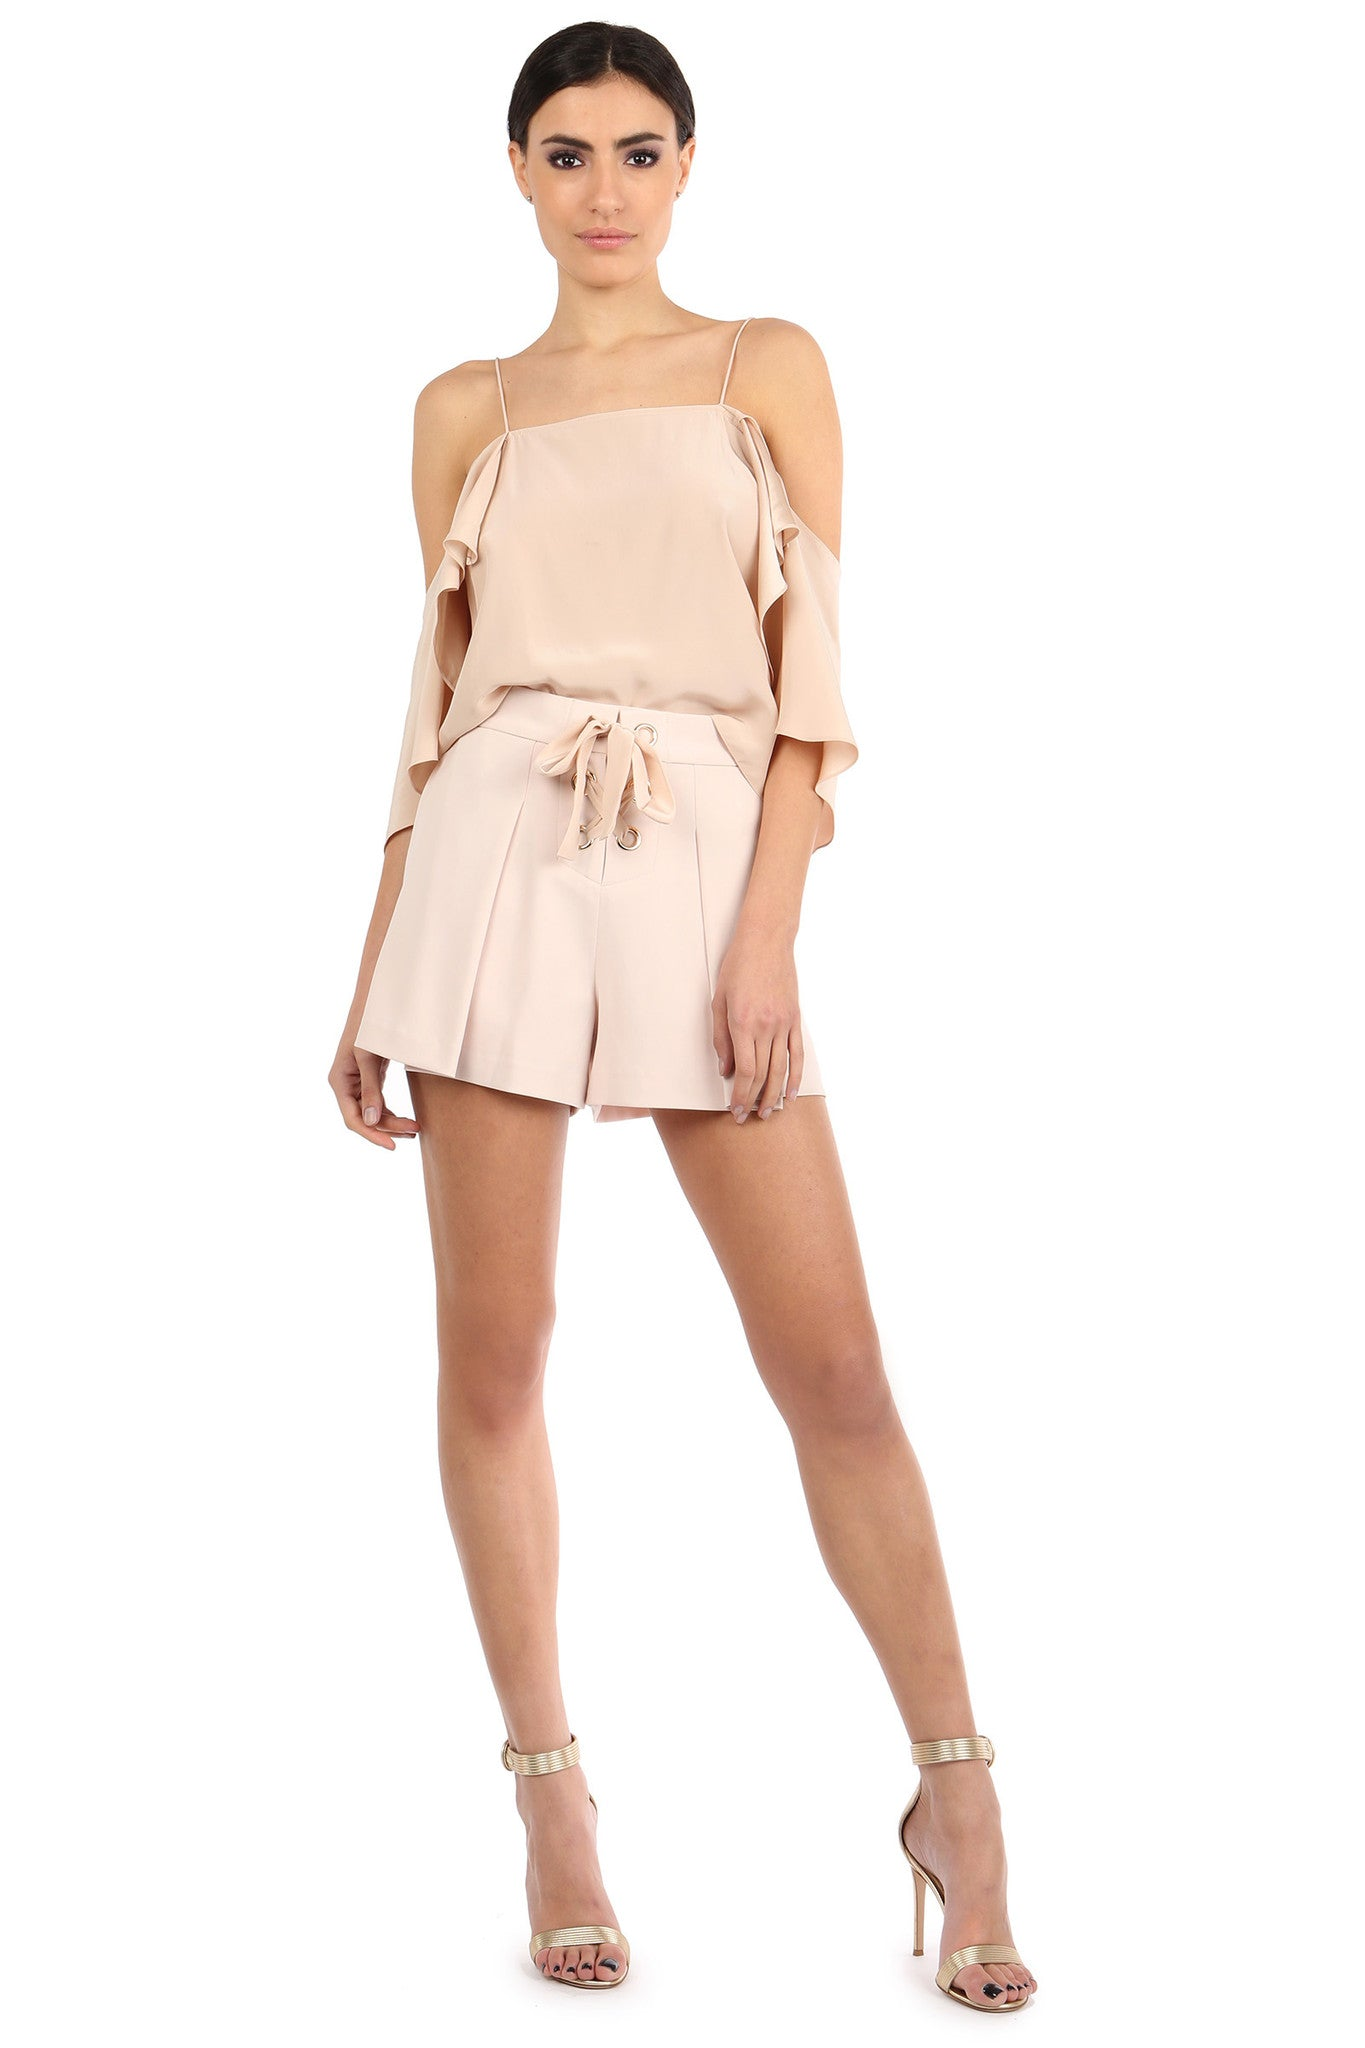 Jay Godfrey Sand Flowy Off-the-Shoulder Top - Full Front View